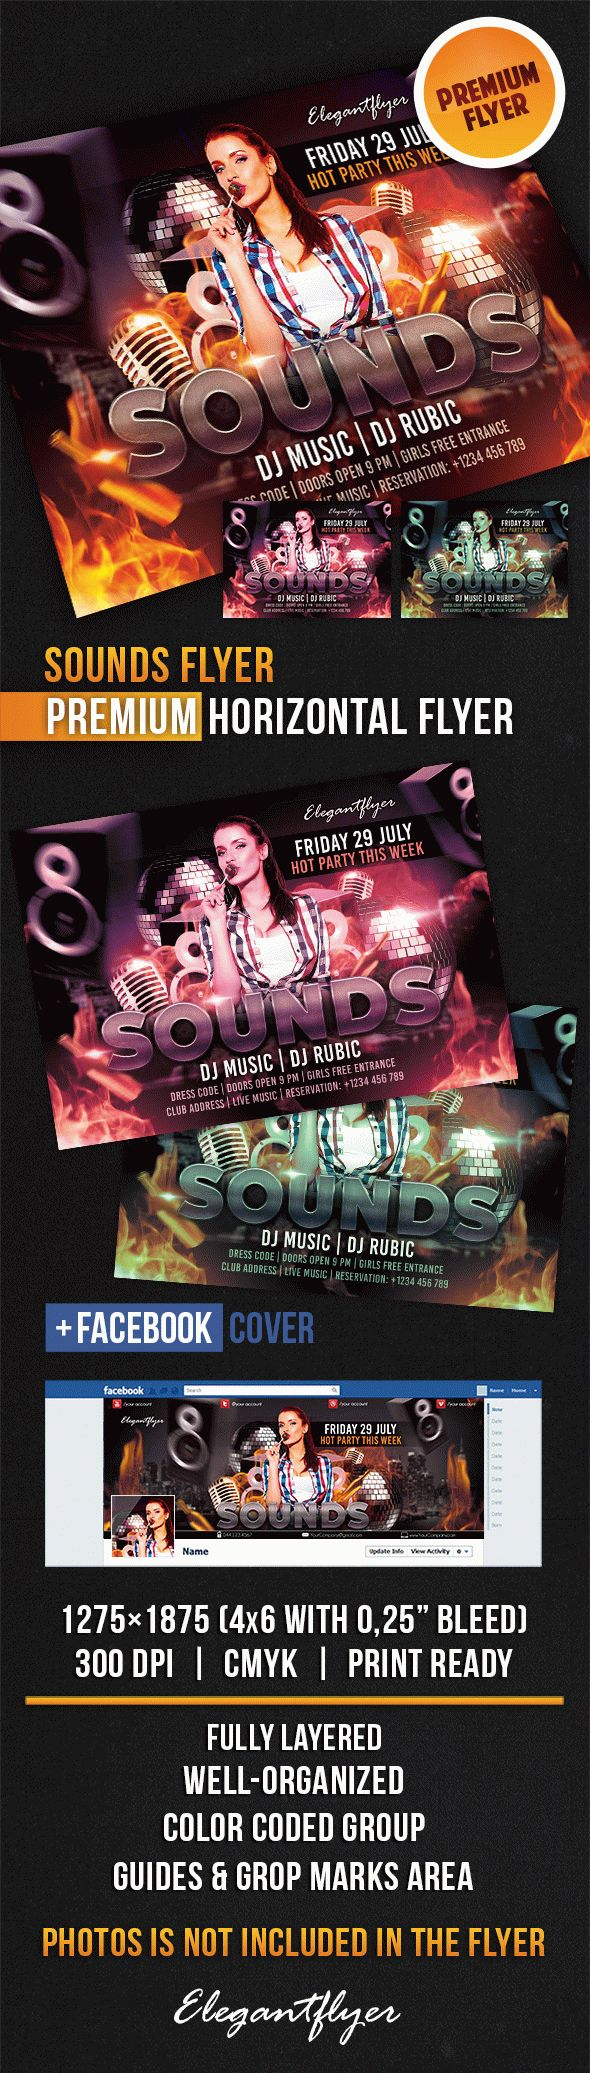 Sounds Flyer – Horizontal Flyer PSD Template + Facebook Cover